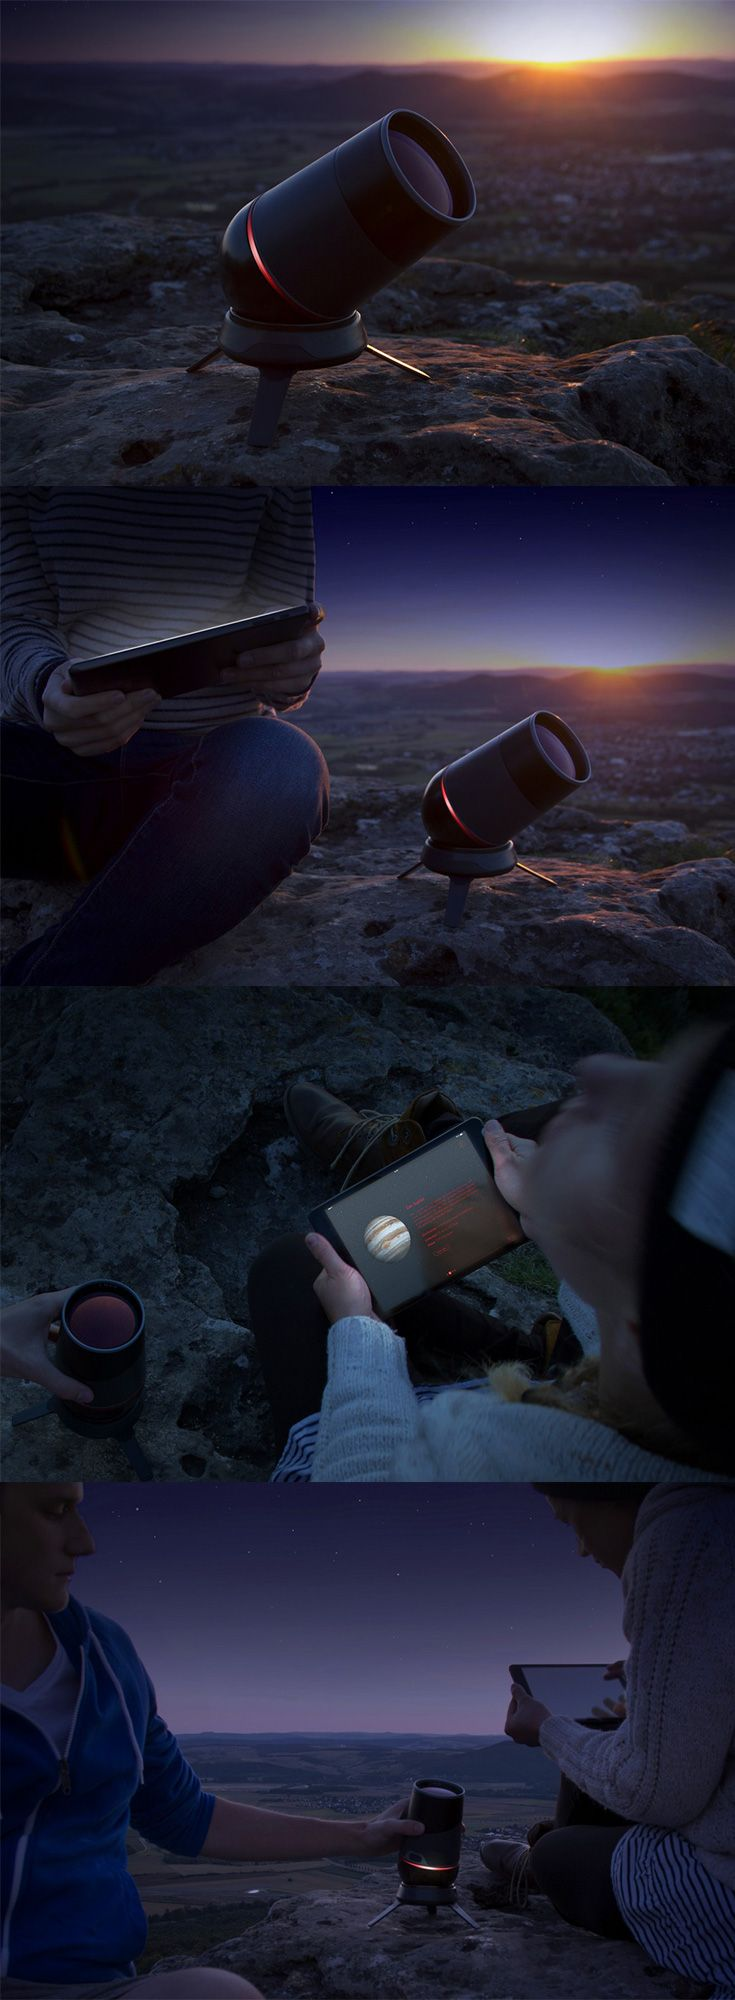 The 'Aeon Telescope Kindler' brings a new definition to the phrase 'aim for the stars', this tiny yet powerful telescope is ideal for the amateur stargazer, making astronomy truly accessible to the masses... READ MORE at Yanko Design !